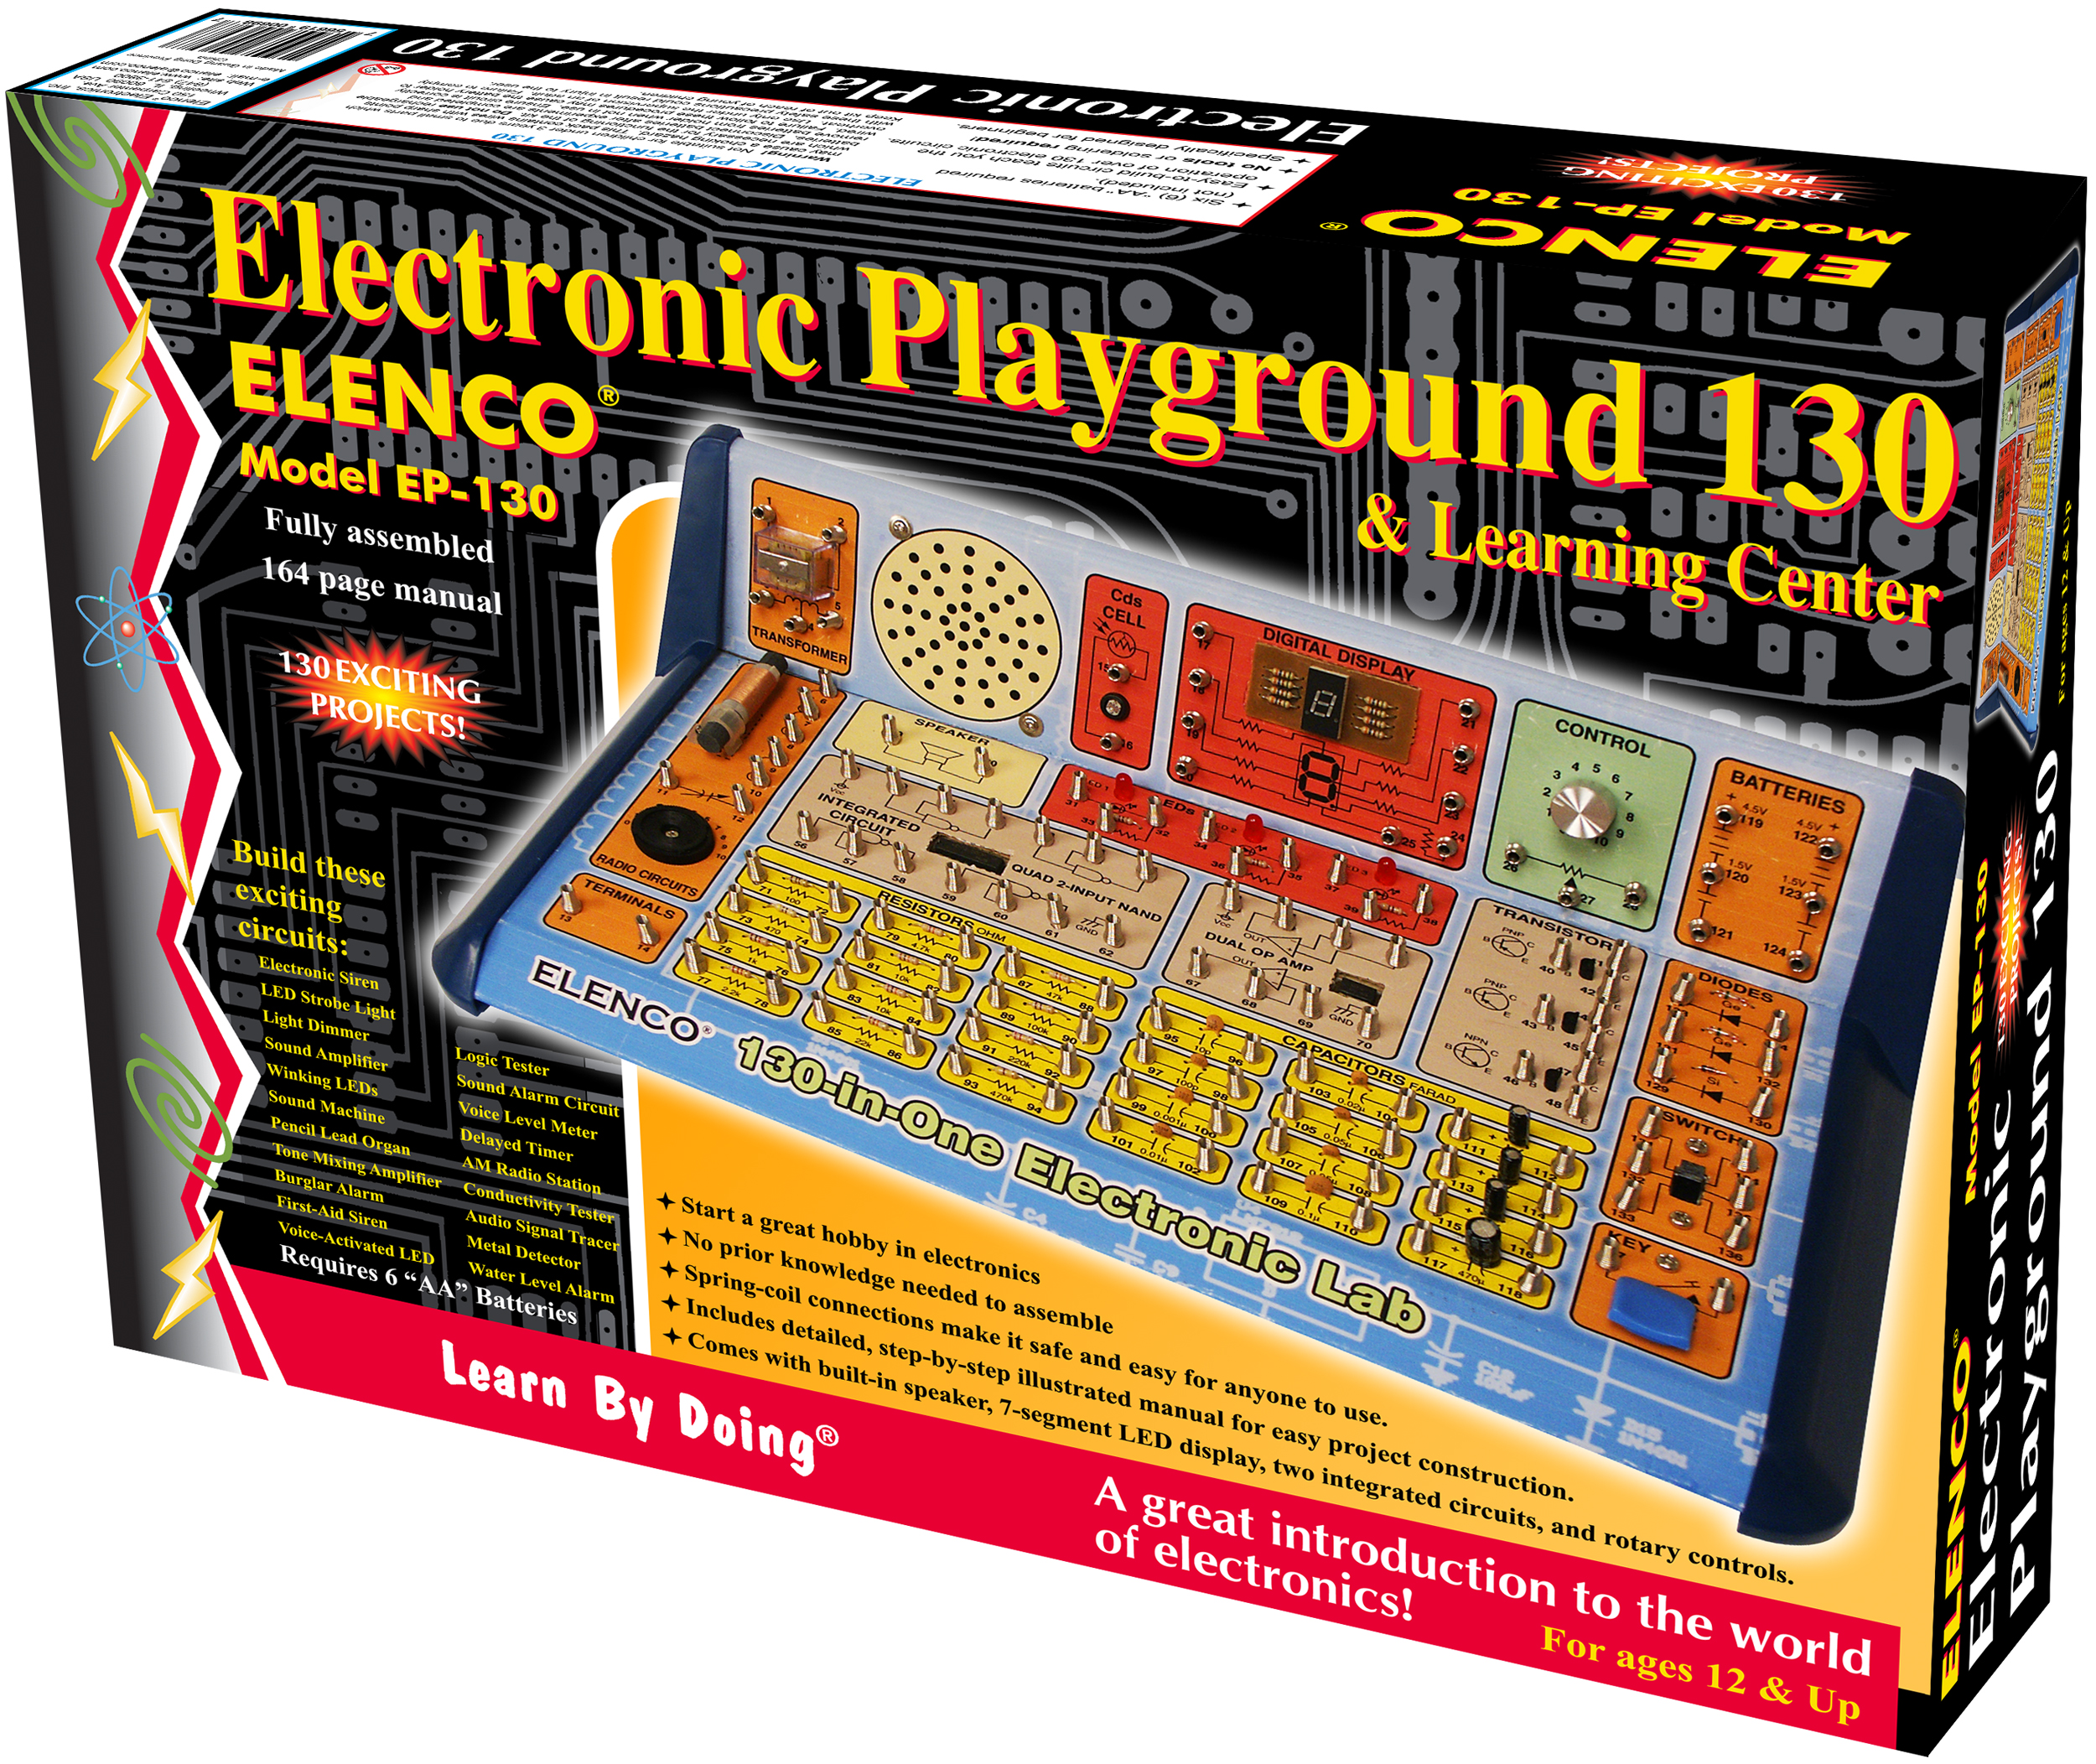 Electronics learning lab review.